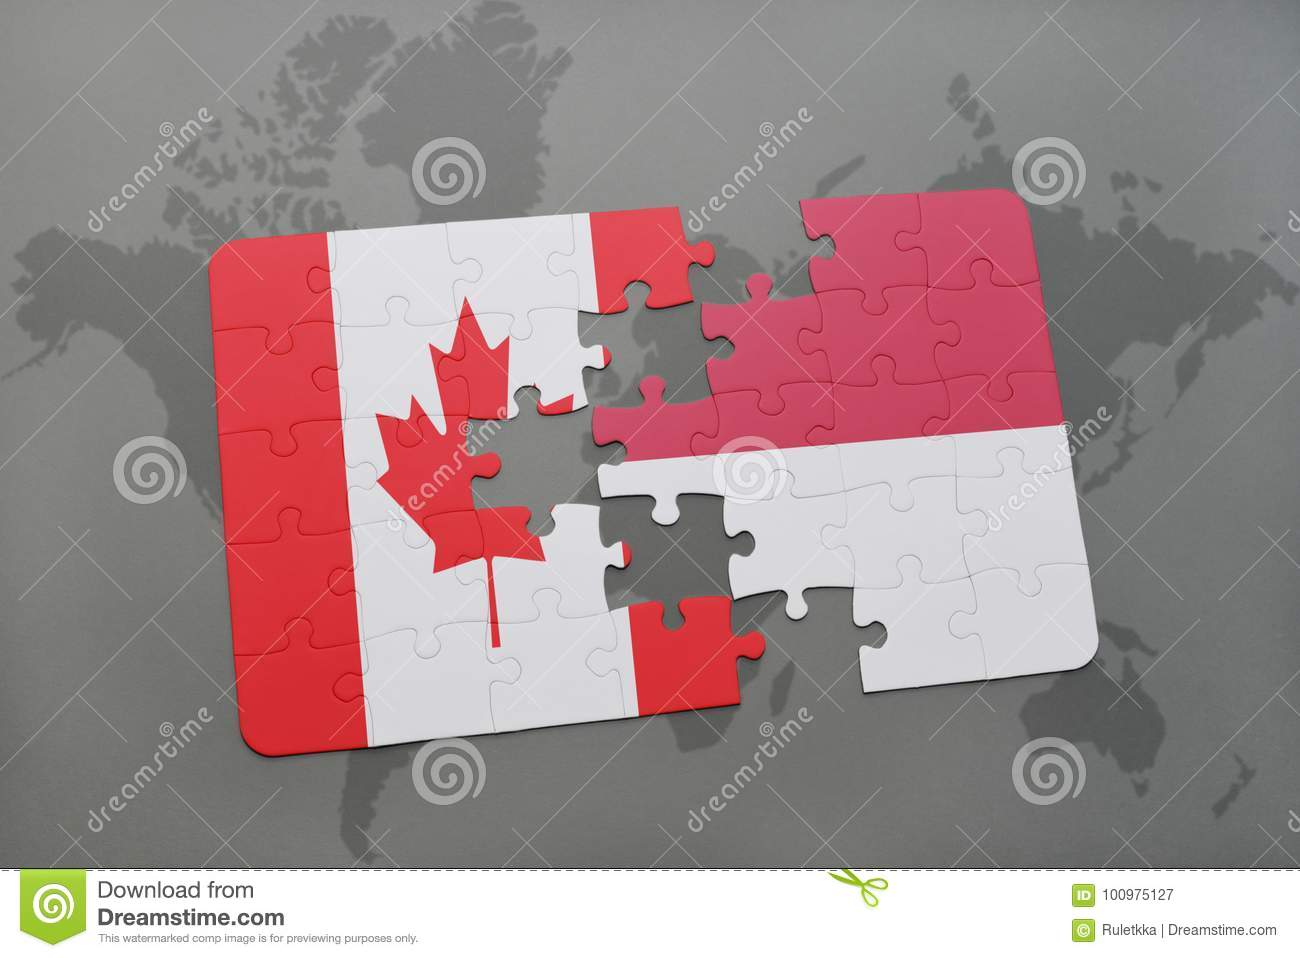 puzzle with the national flag of canada and indonesia on a world map background.